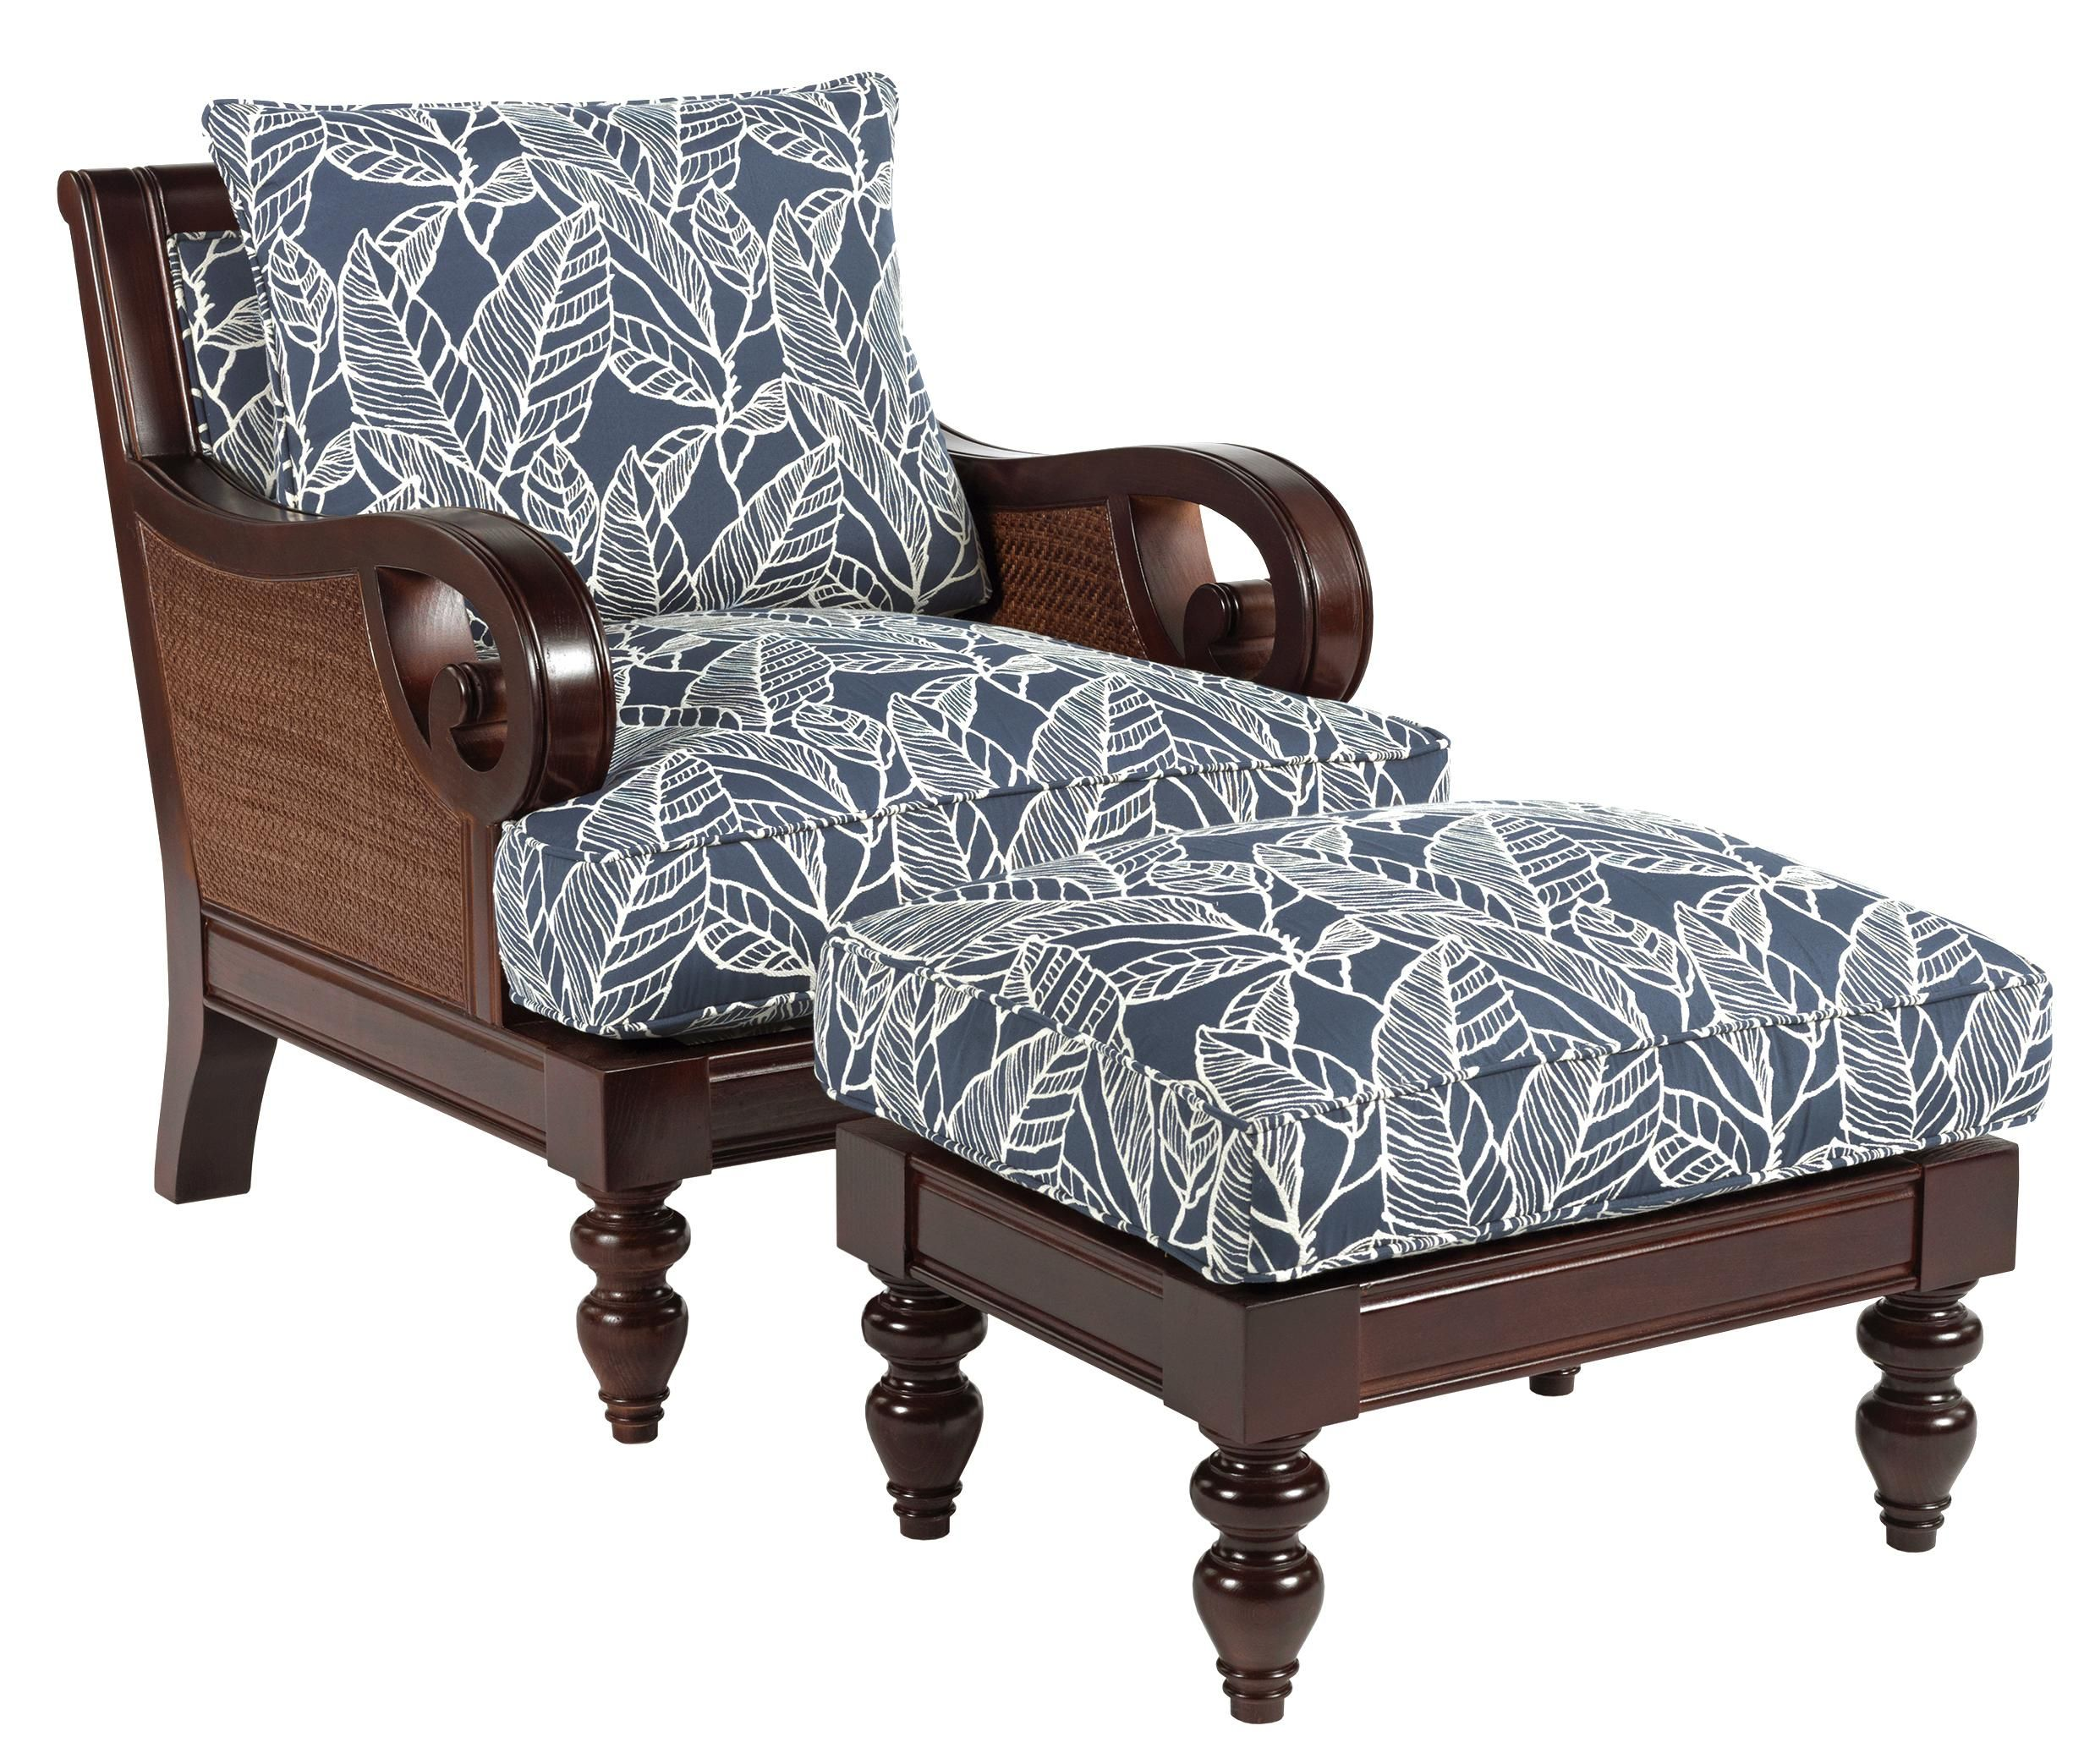 Tailynn Tropical Exposed Wood Chair And Ottoman Set By Sam Moore | Wolf  Furniture. Also